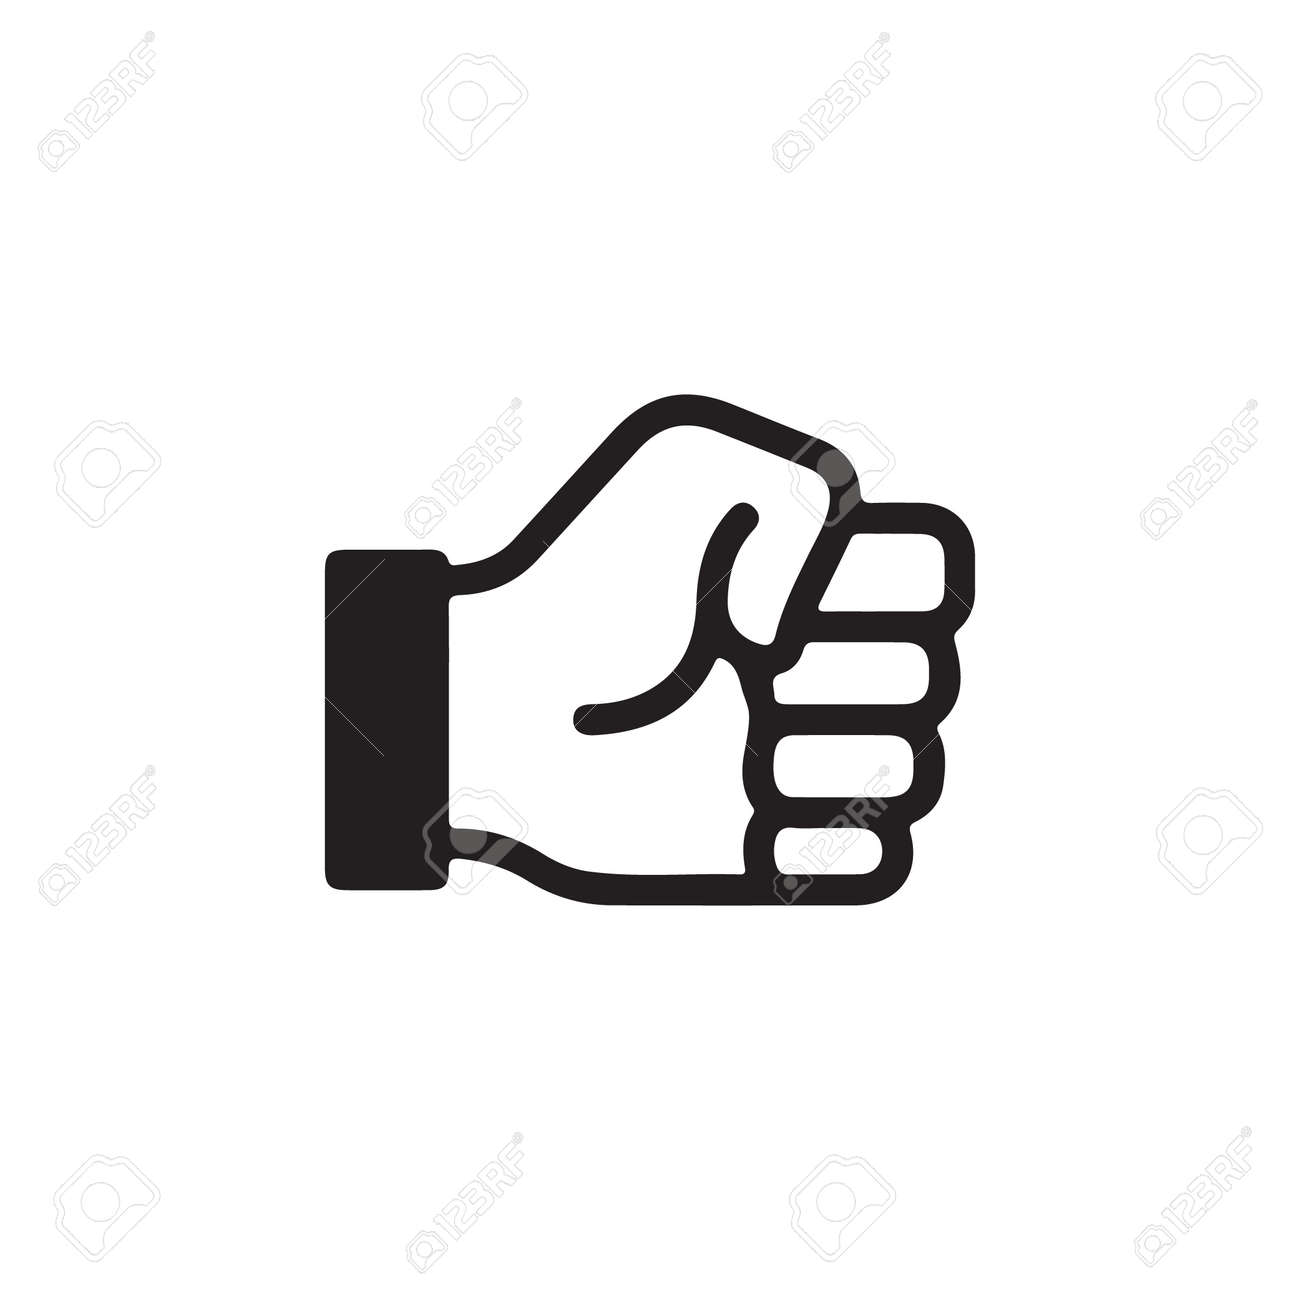 Raised Fist, Hold Gesture, Holding on Gestures of Human Hand Icon In Trendy Design Vector Eps 10 - 148574473